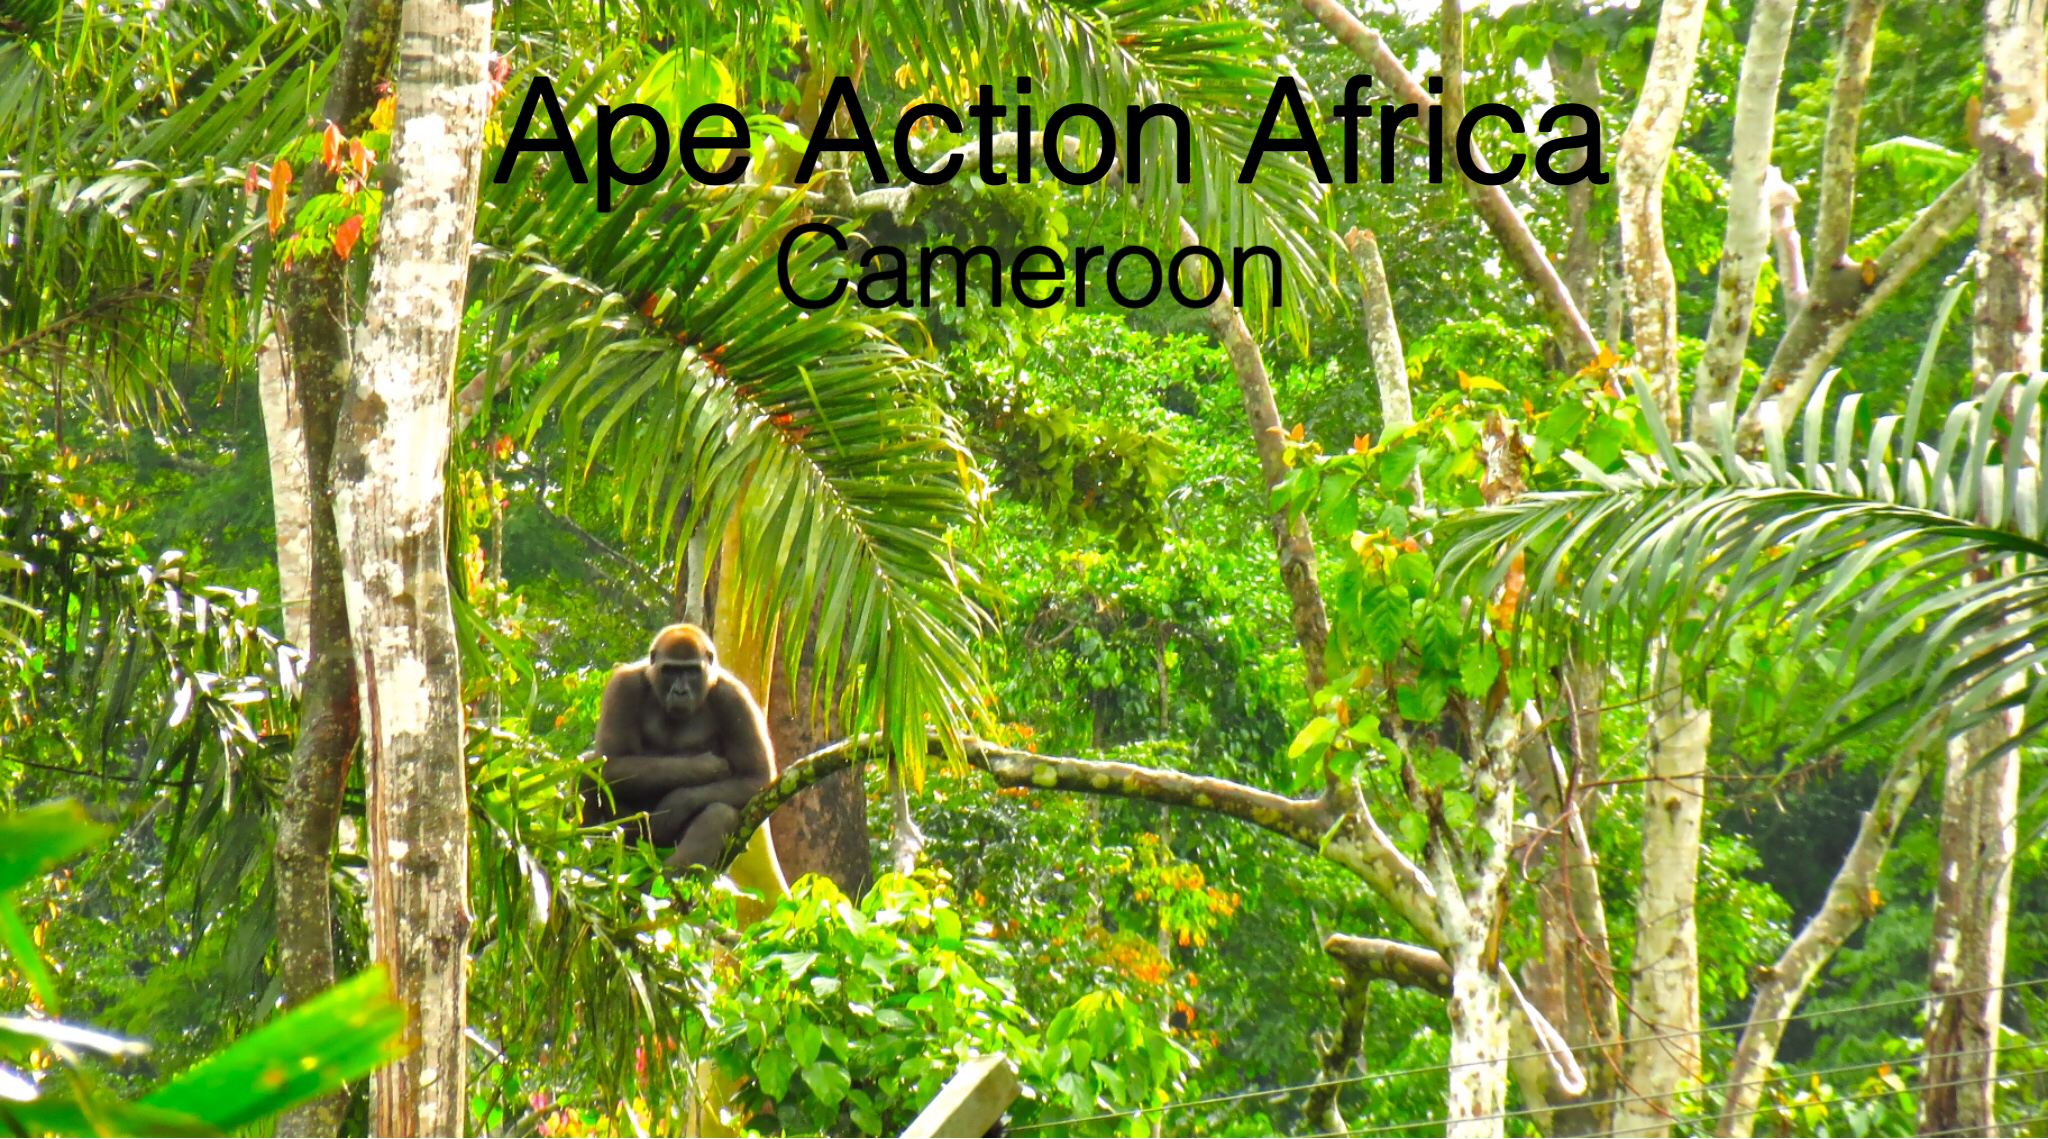 a gorilla sits high up in the forest canopy